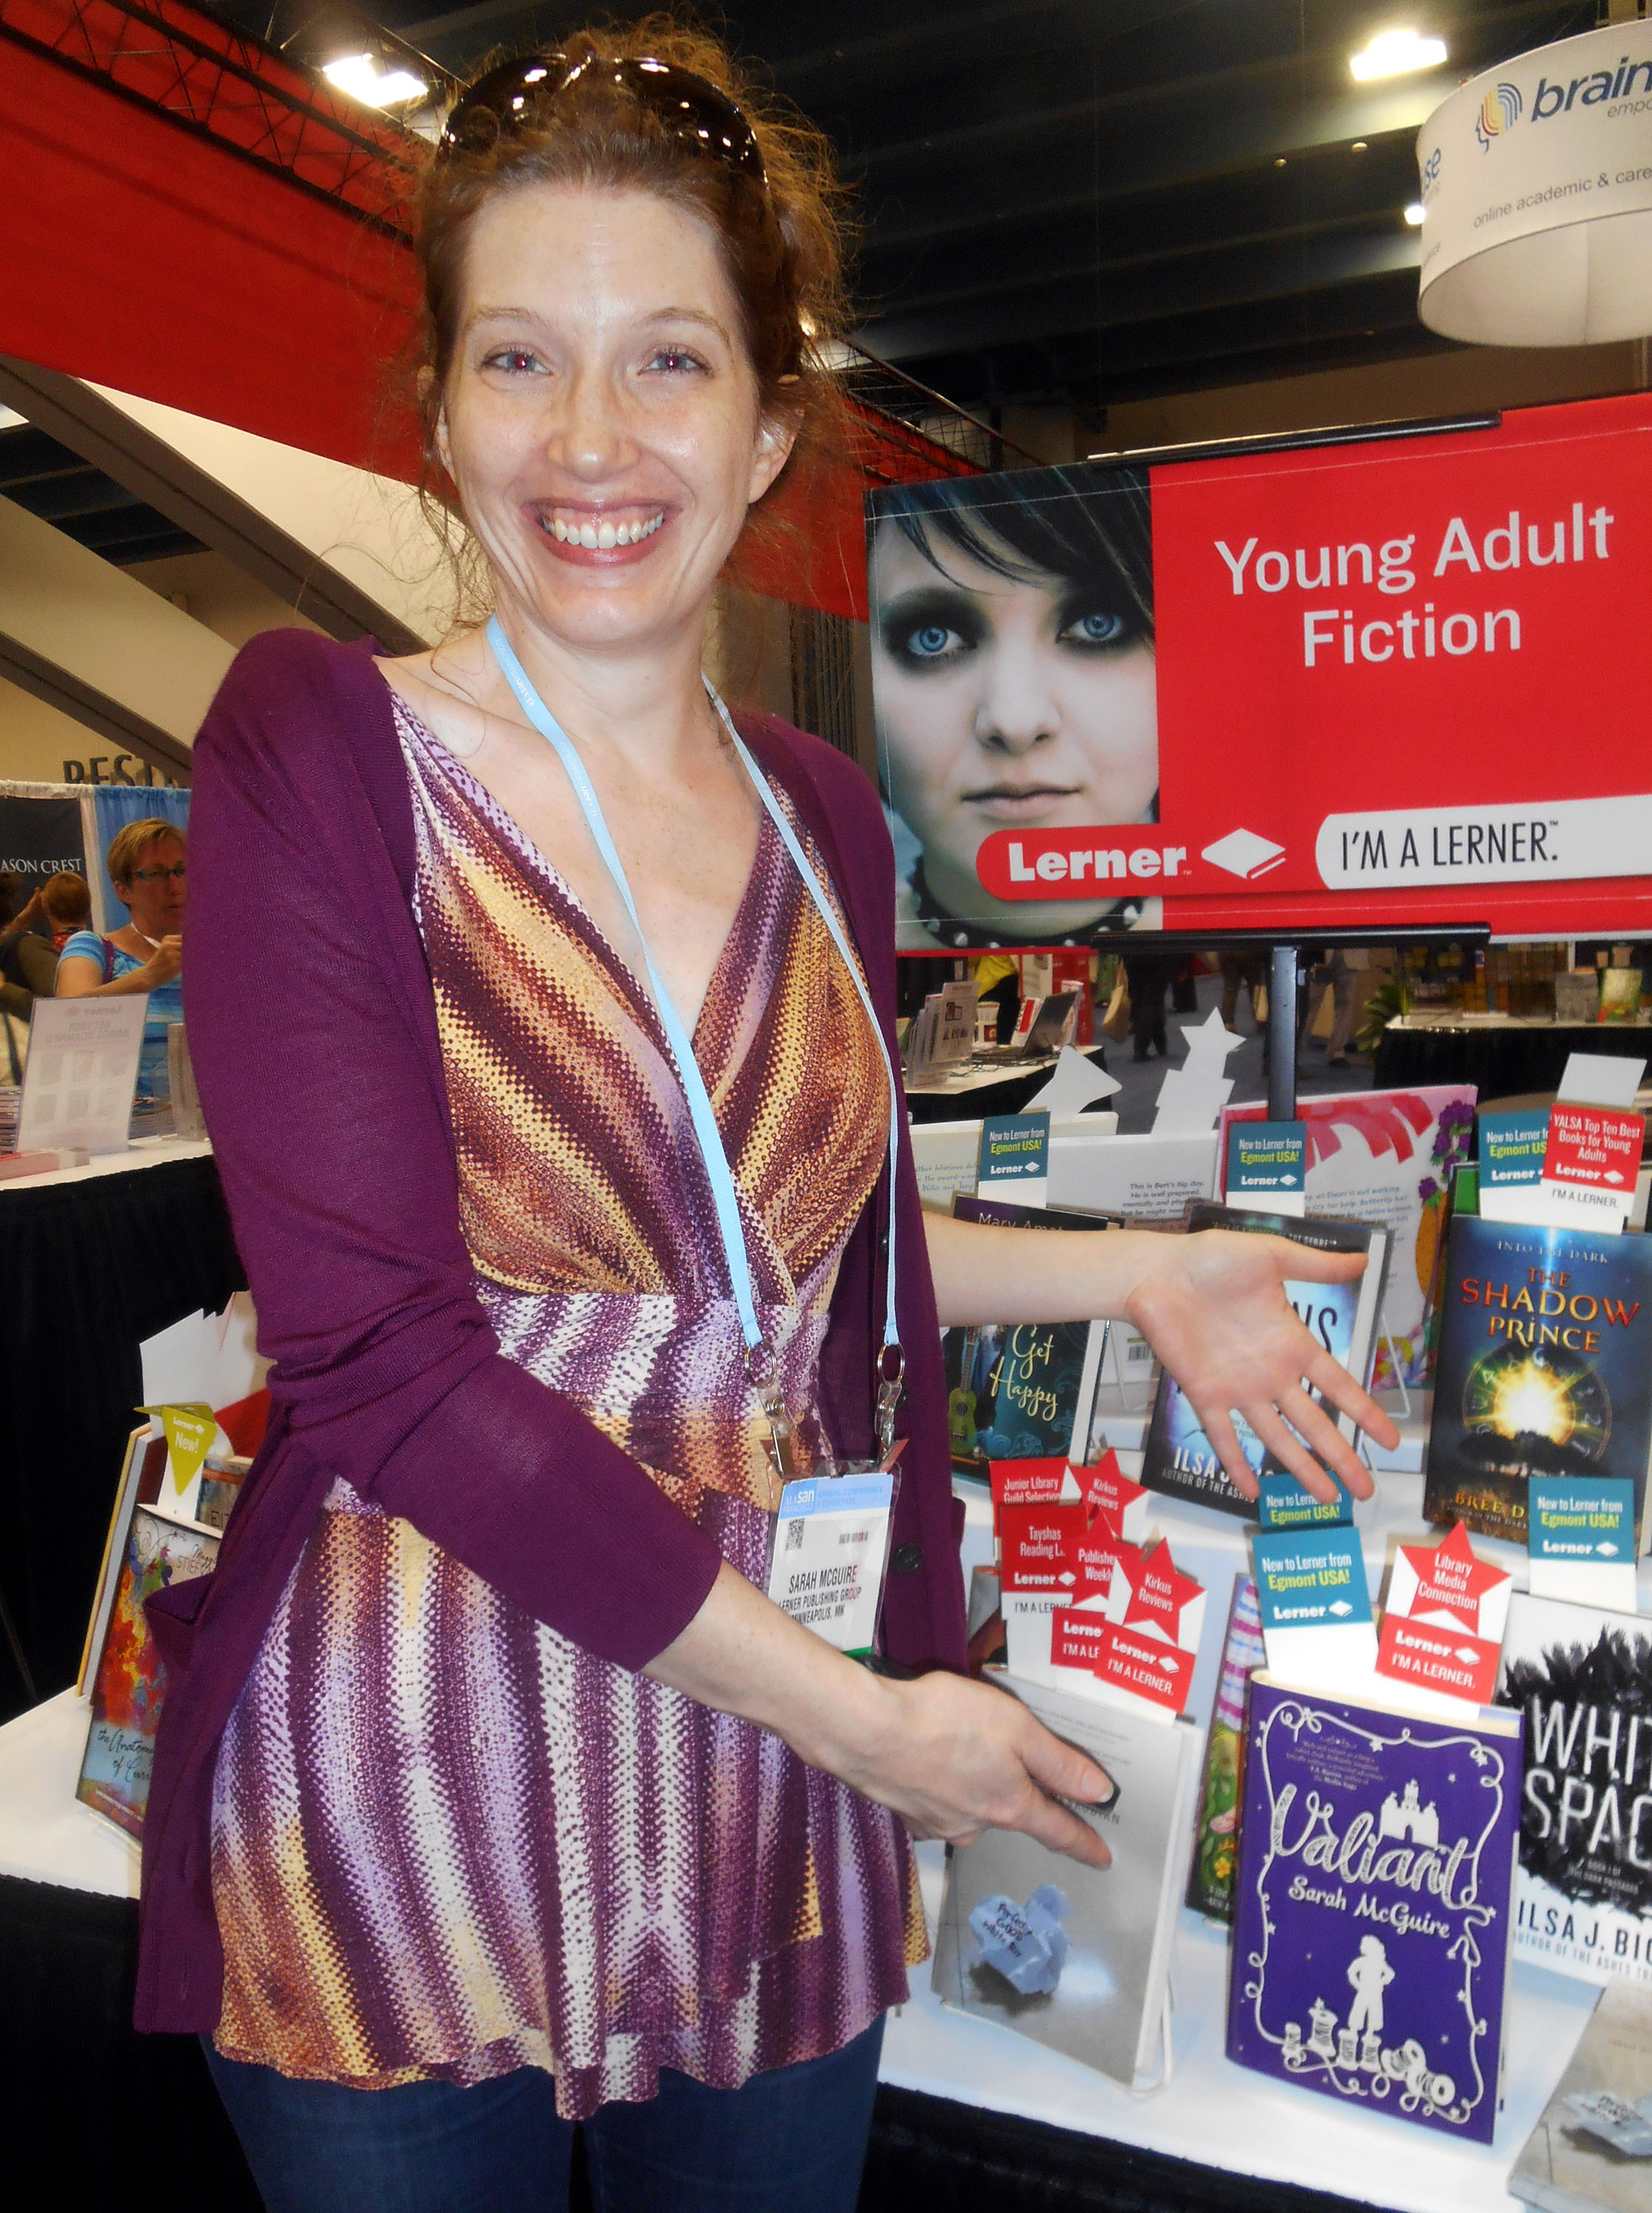 Sarah McGuire and her new book 'Valiant'.